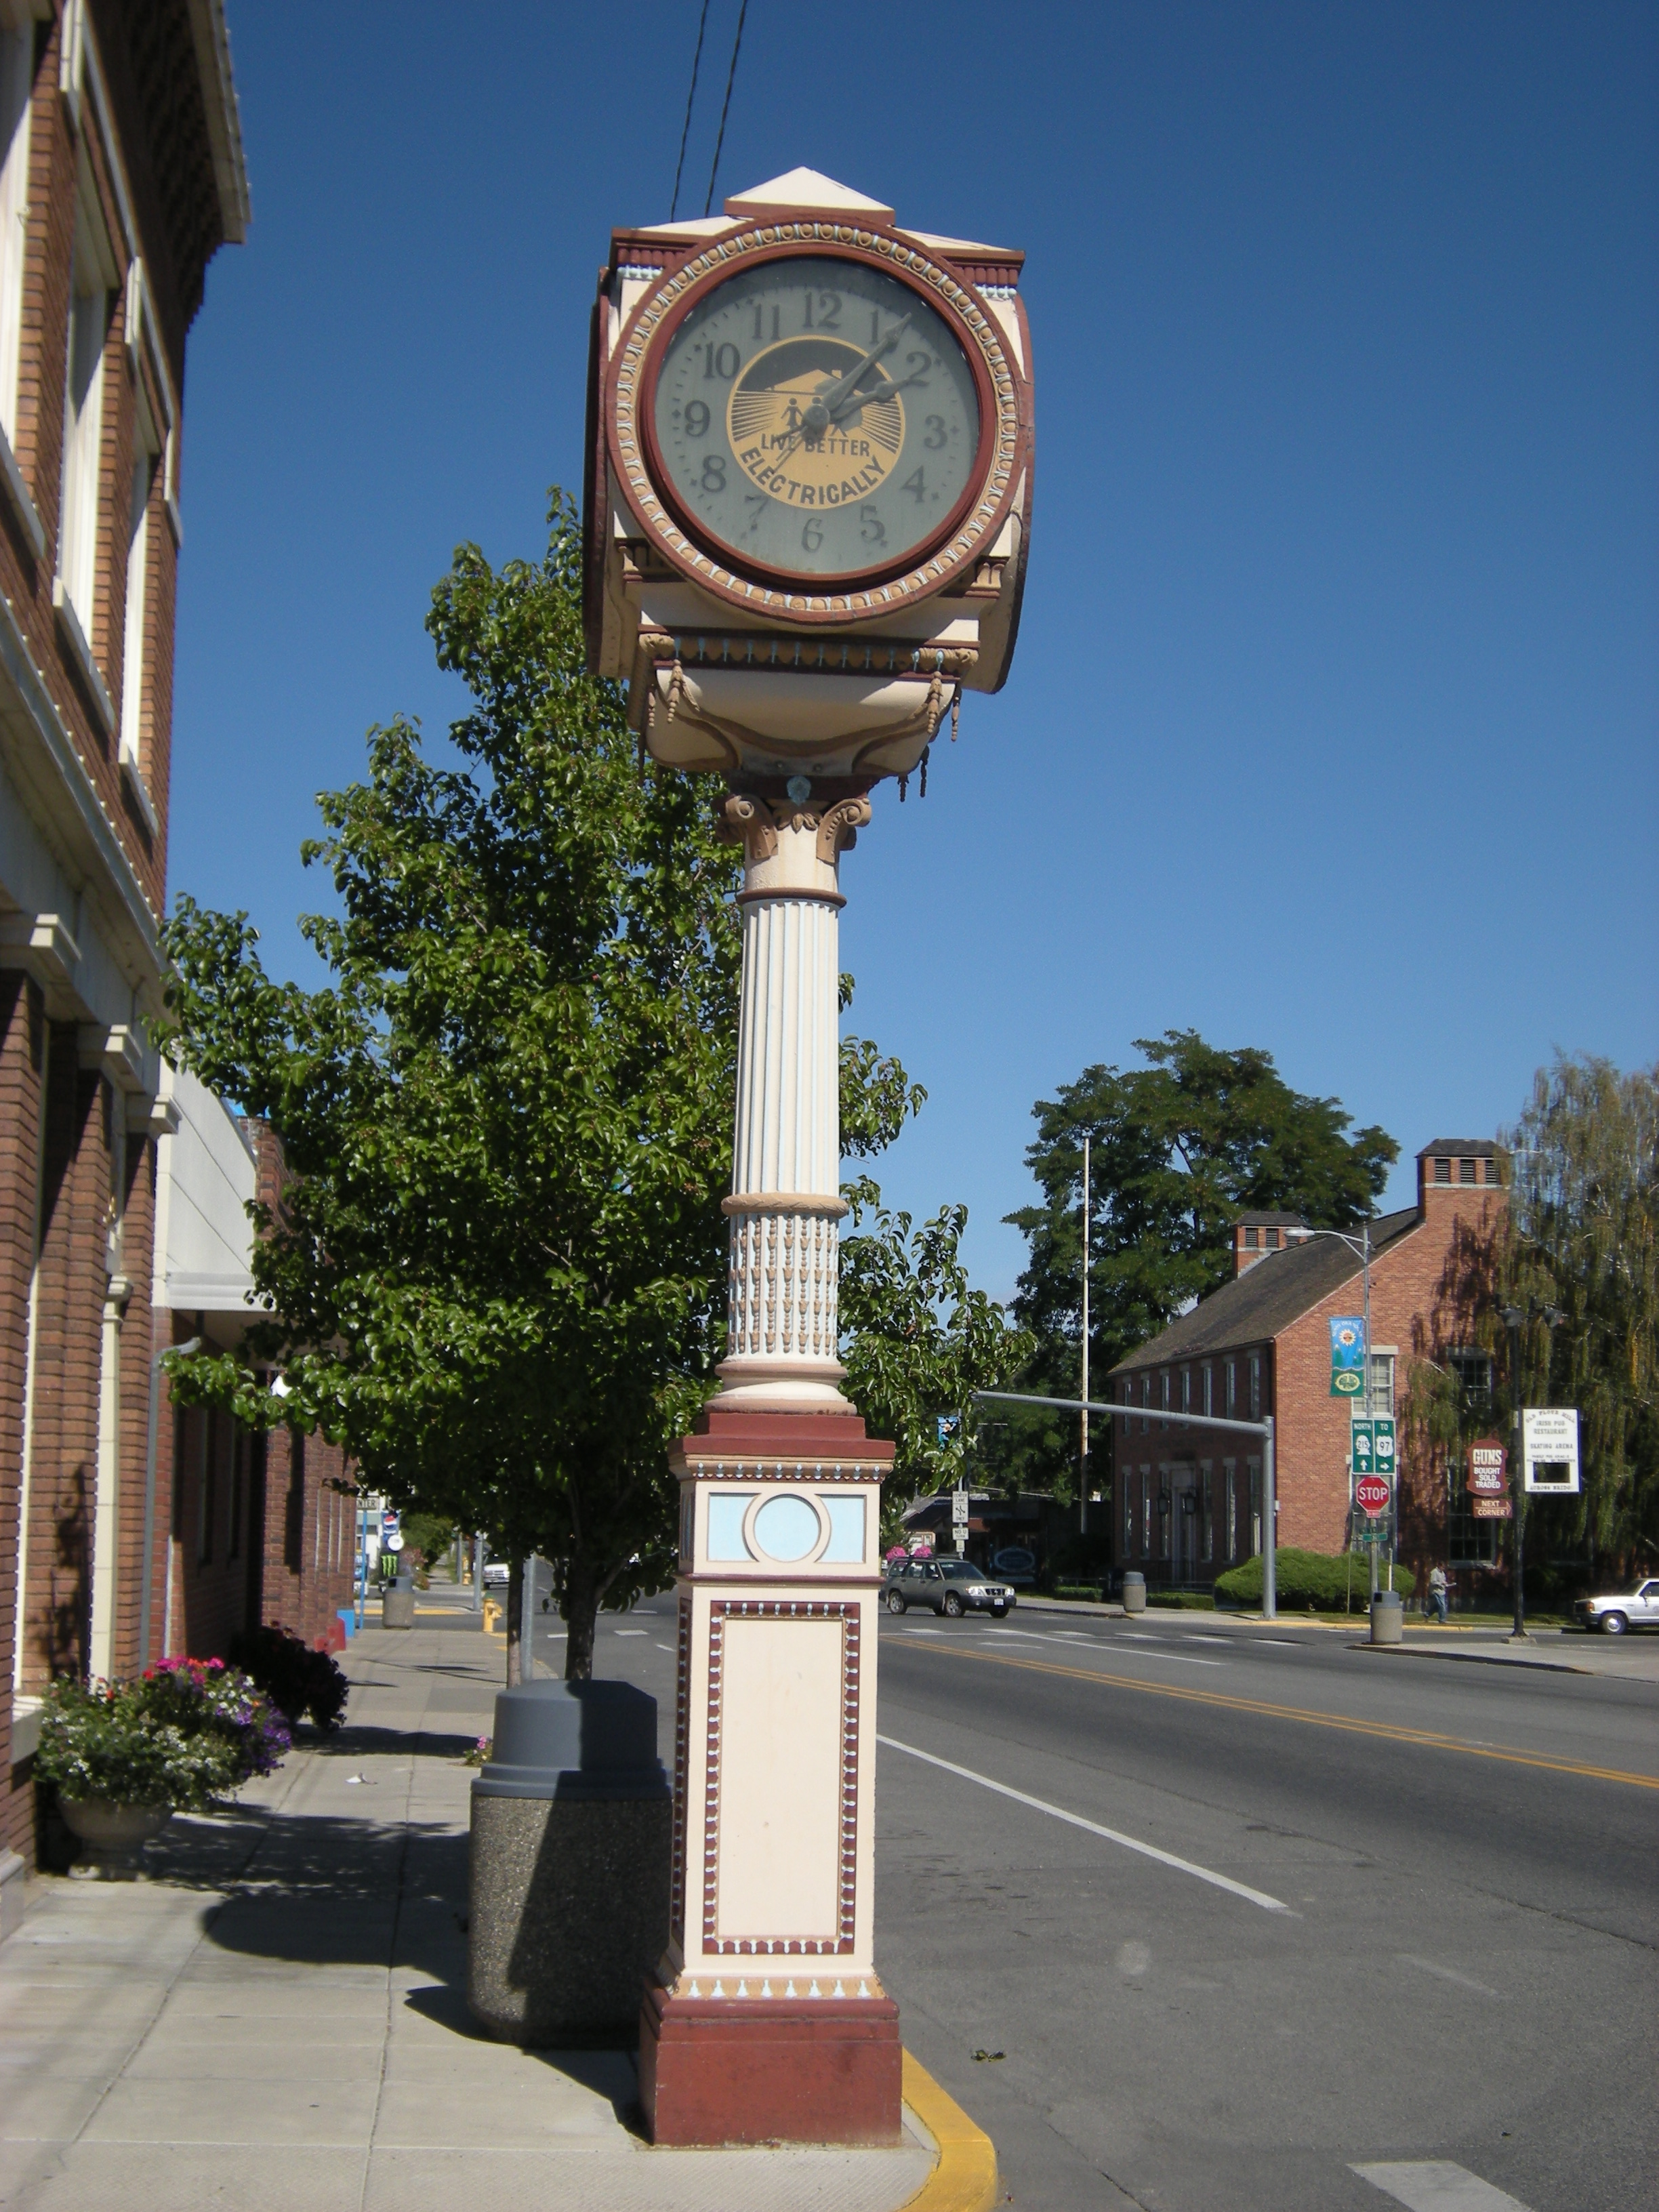 Okanogan,_WA_-_street_clock_and_post_office.jpg